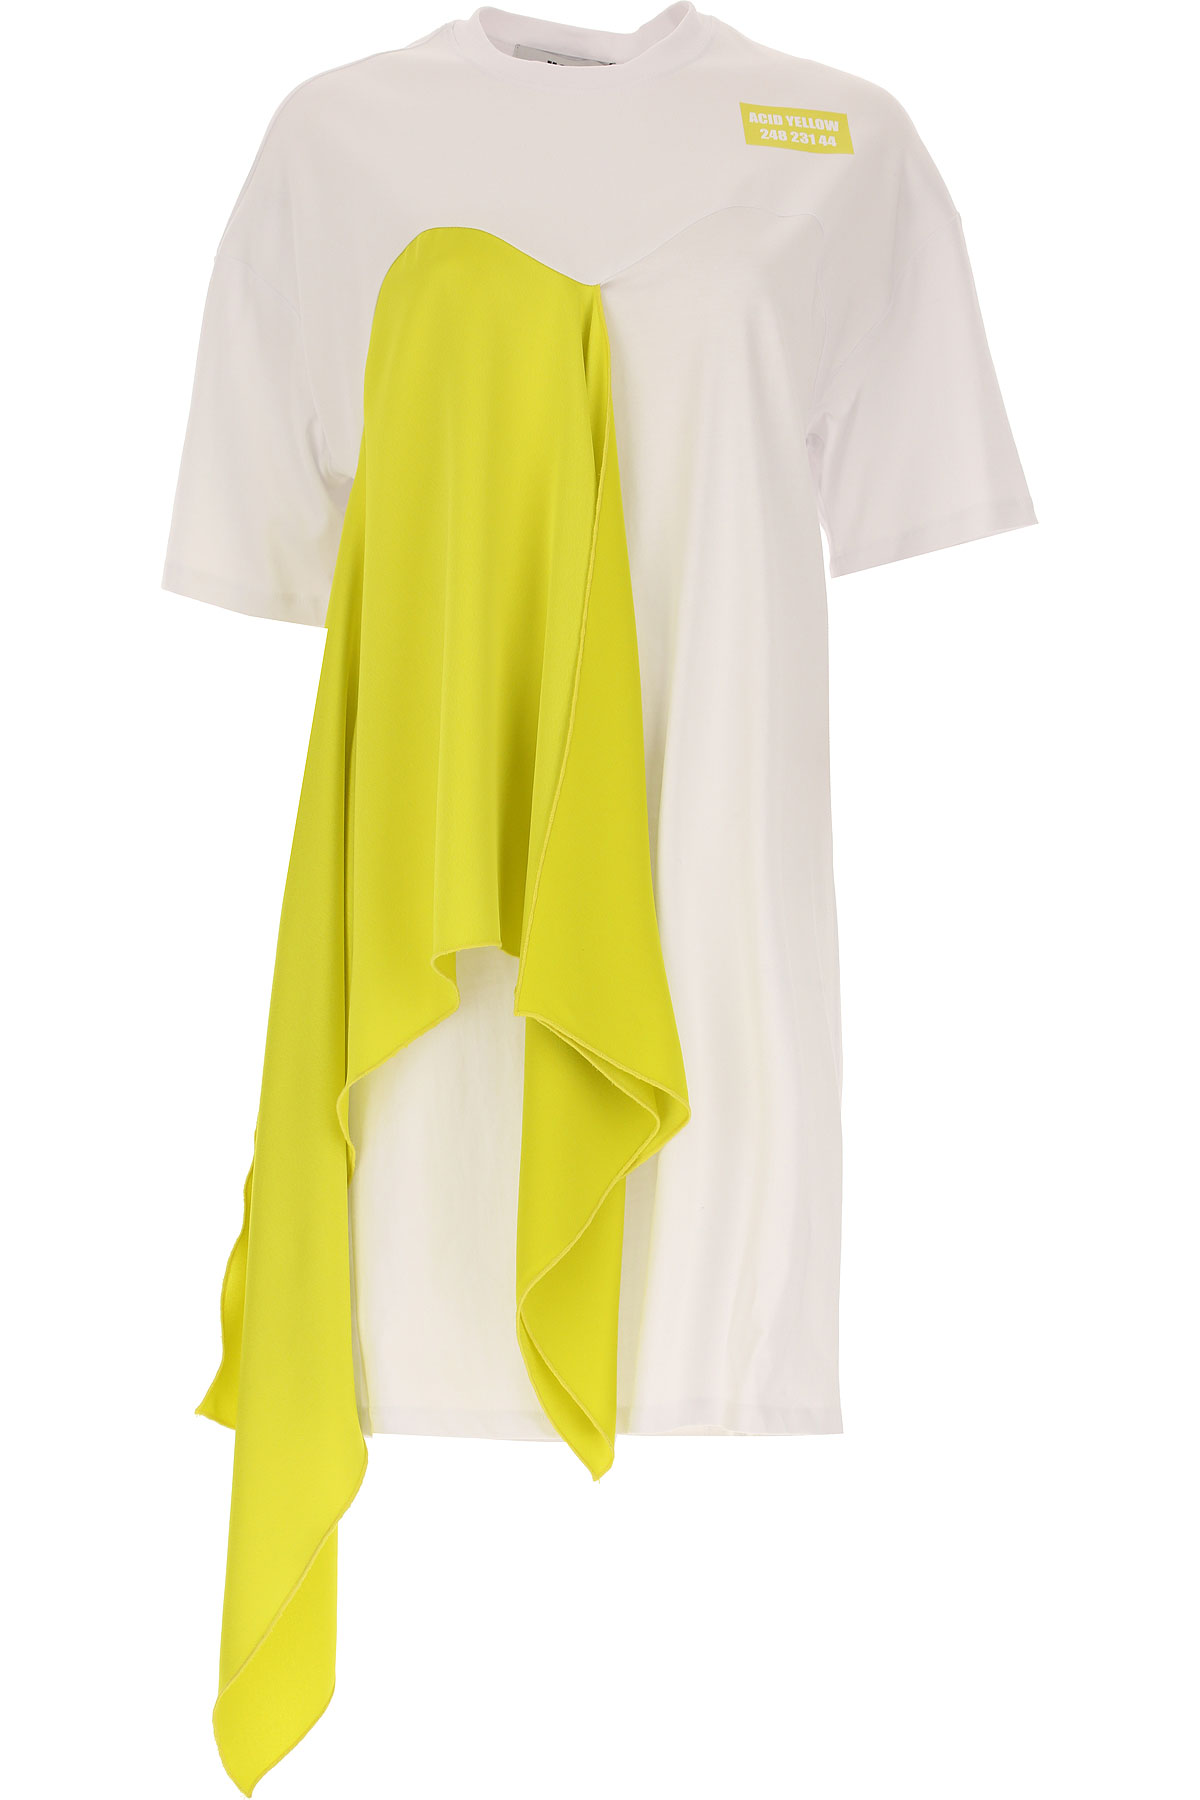 MSGM Dress for Women, Evening Cocktail Party On Sale, White, Cotton, 2017, 4 8